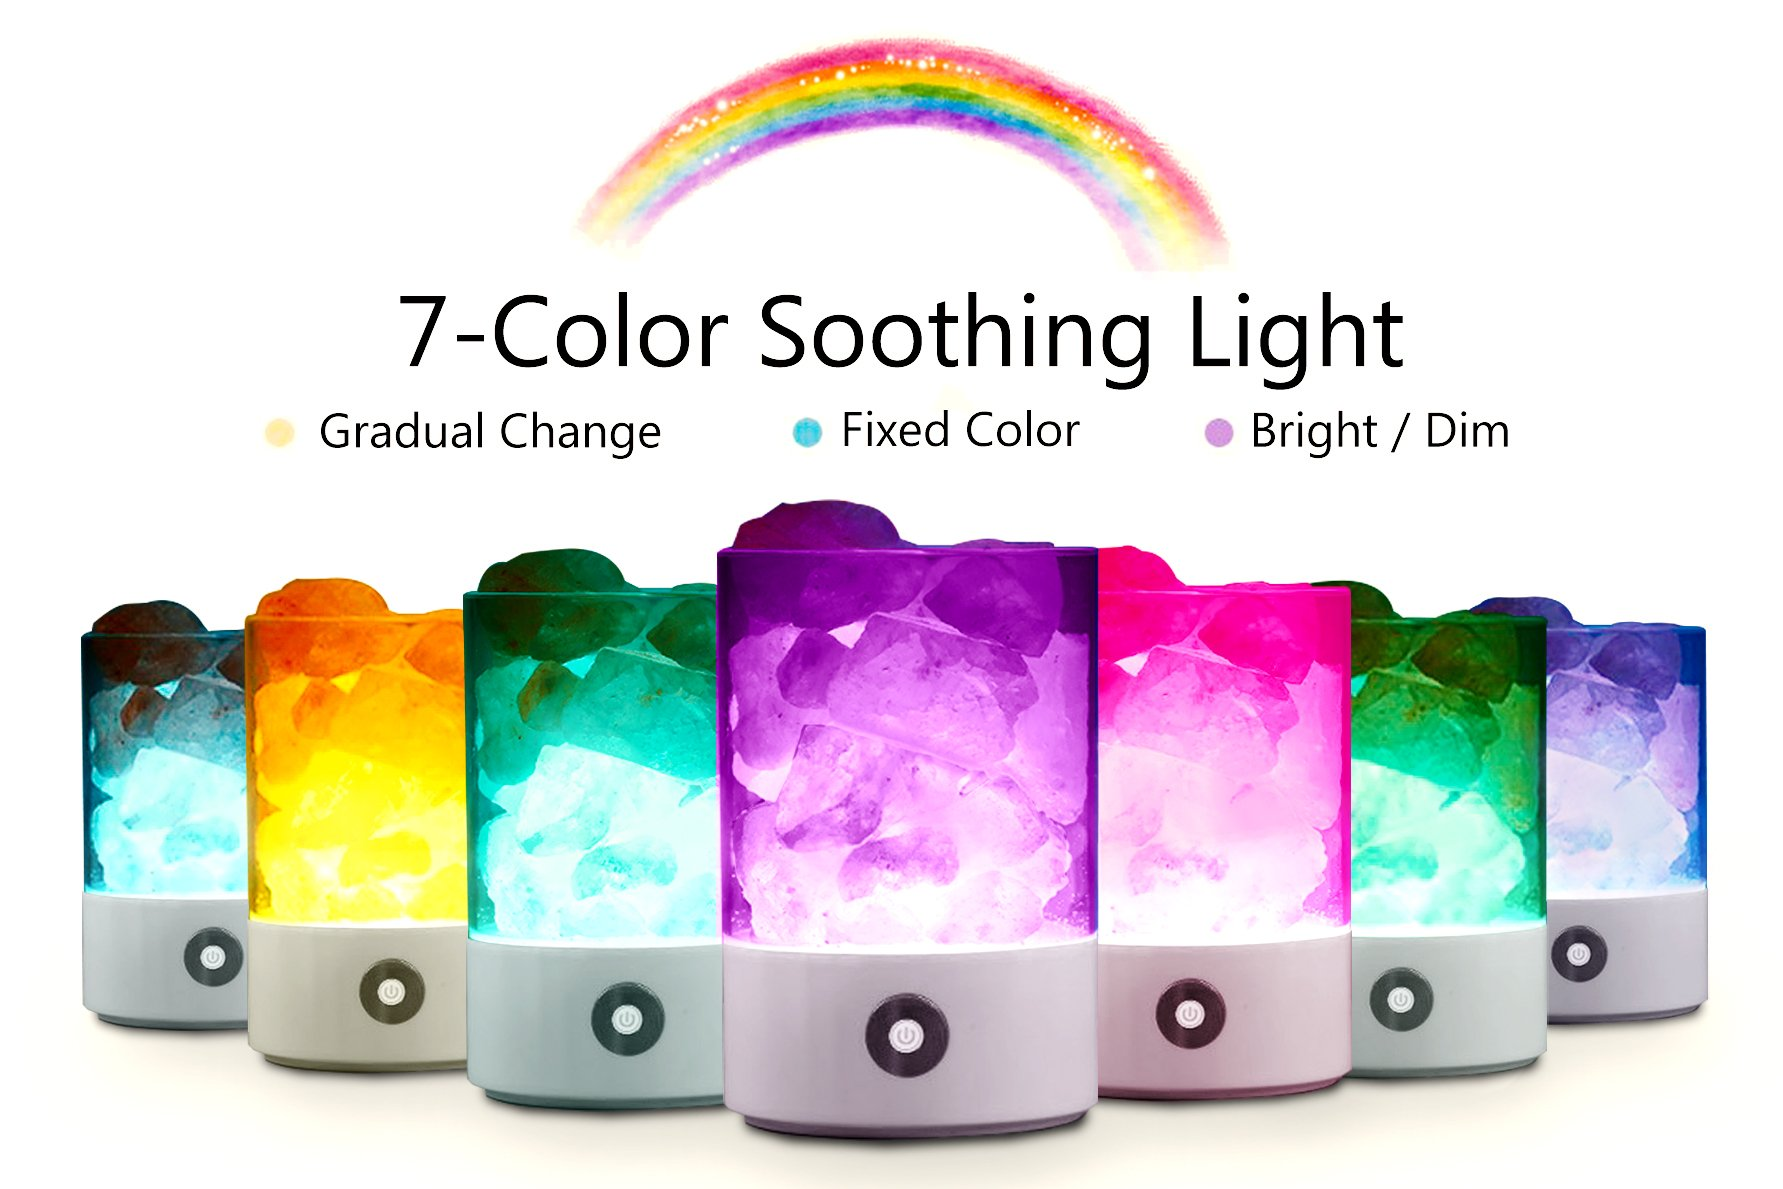 [Wall Adapter Included] Natural Himalayan Salt Lamp Dimmable USB Hymalain Sea Salt Crystal LED Desk Nightlight with Touch Dimmer Control Adjustable 7 Color Changing Night Light